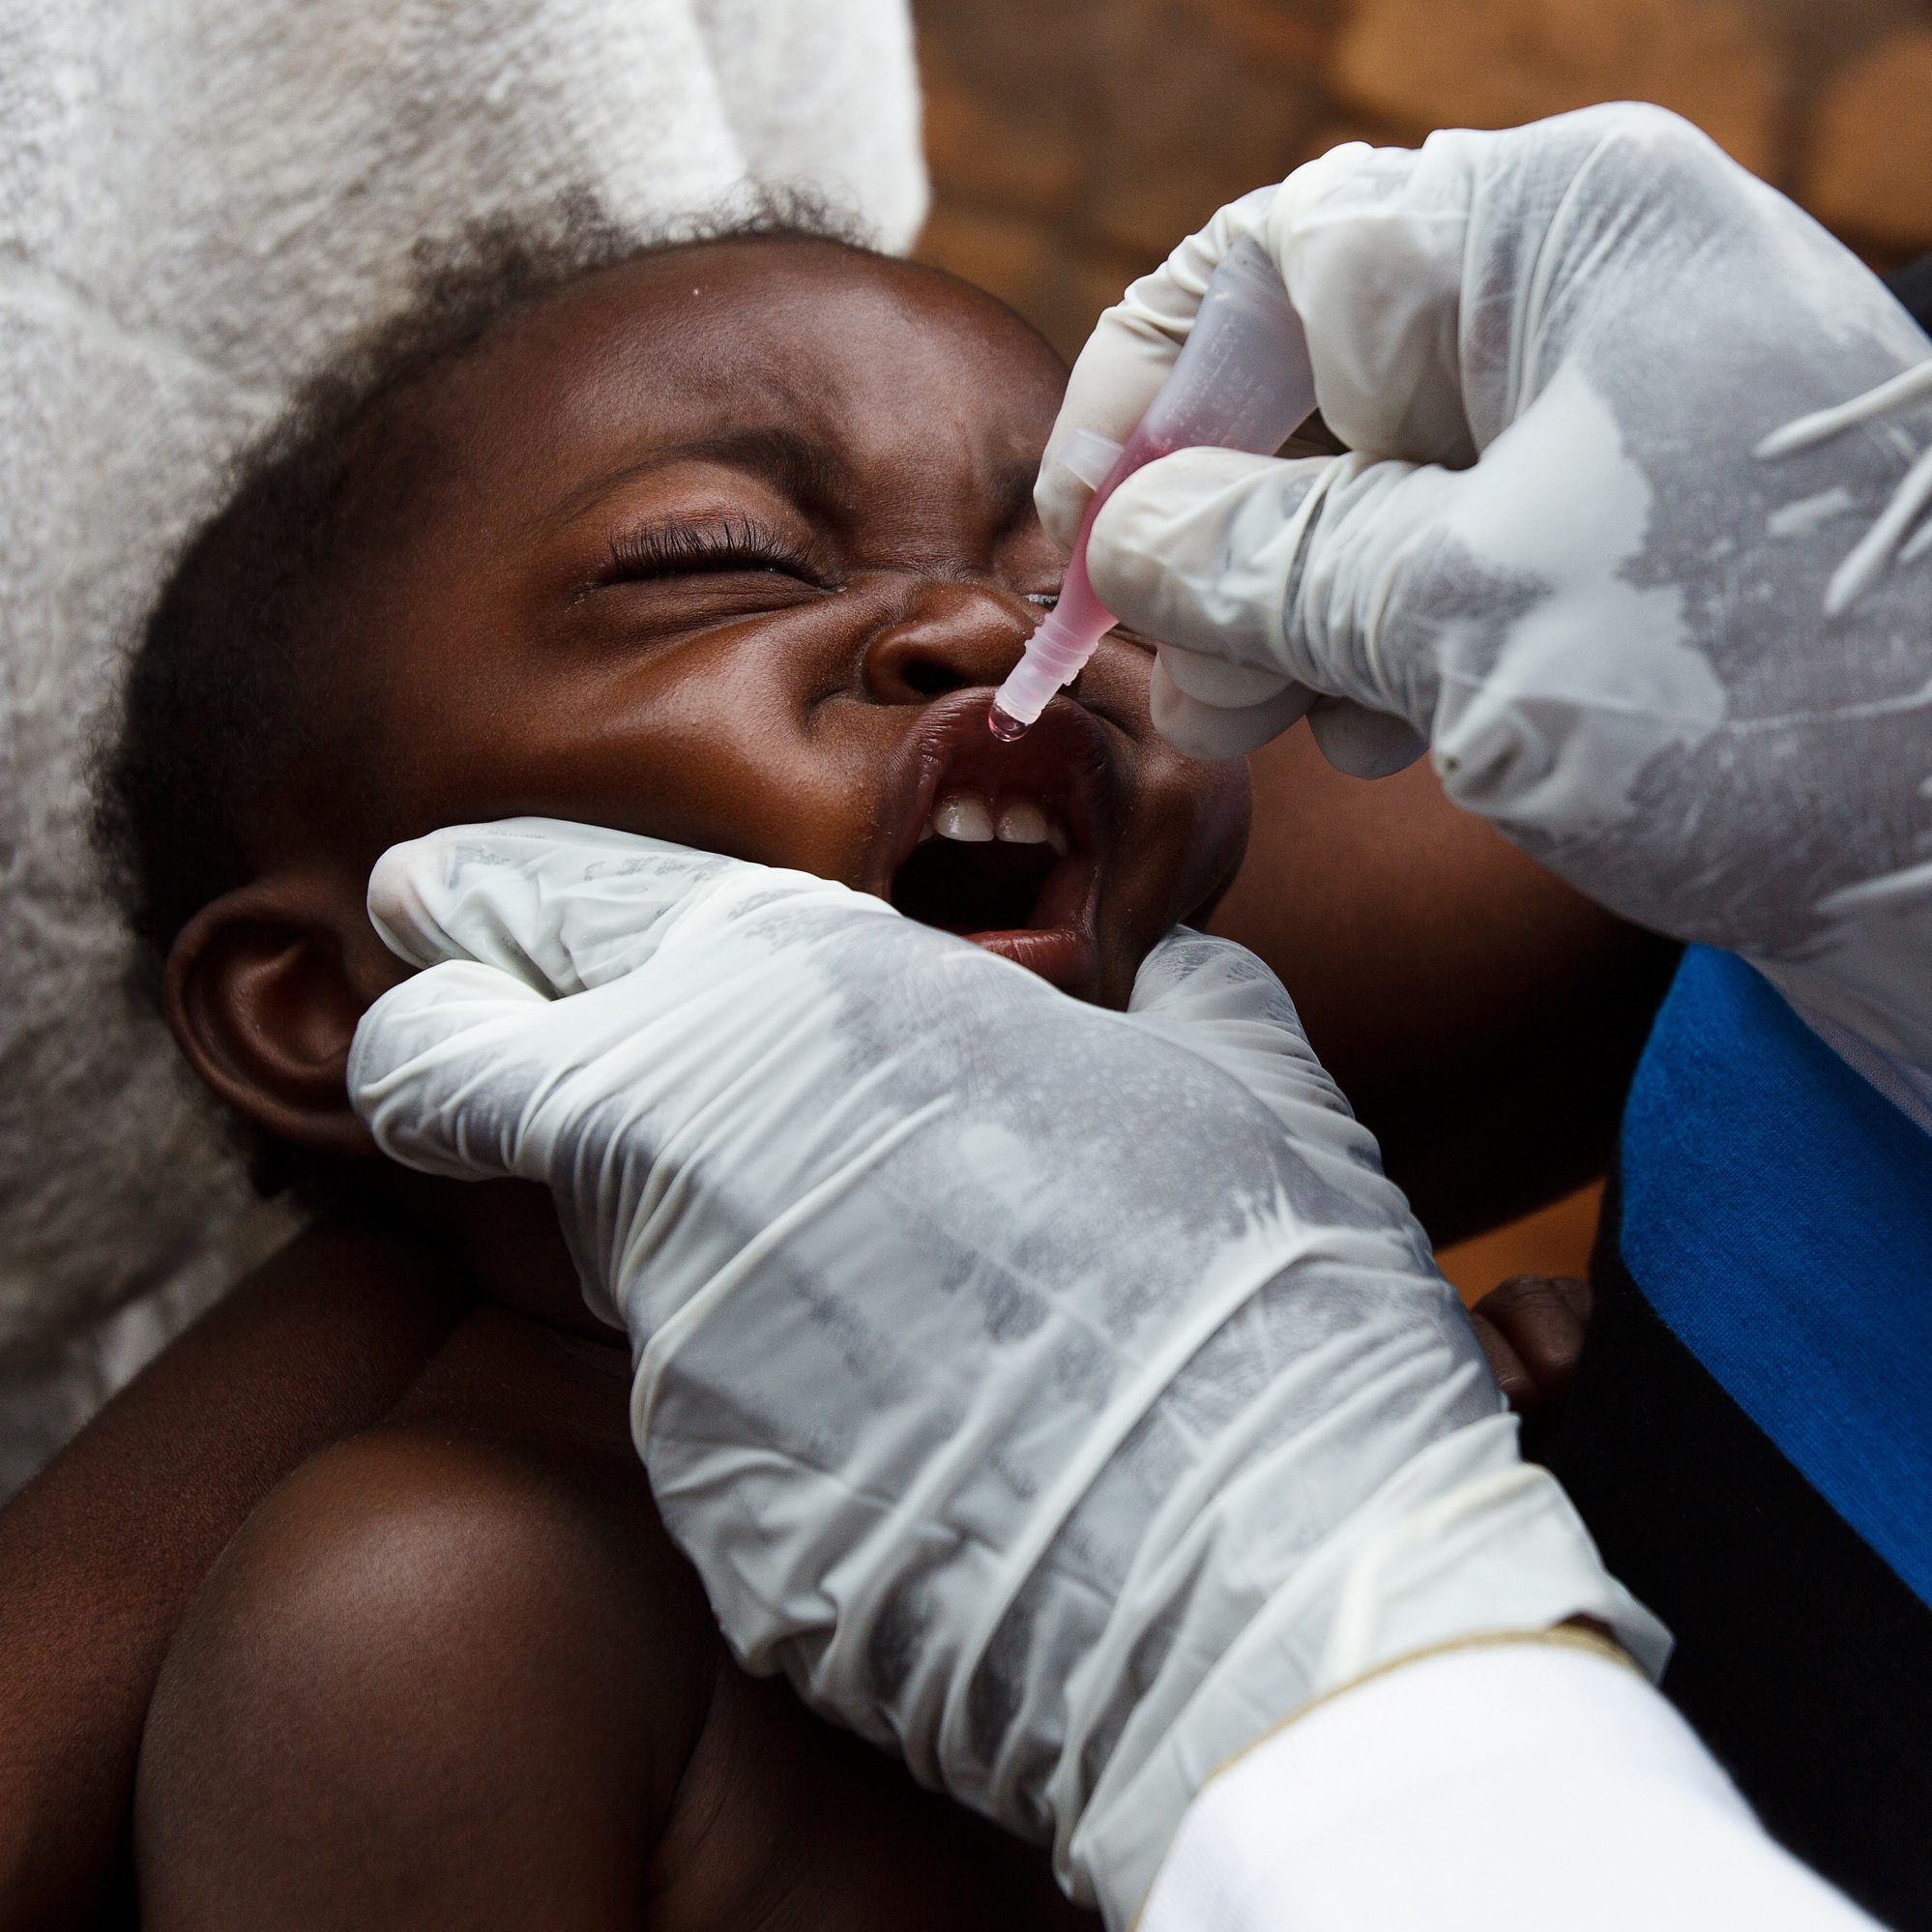 A child reluctantly receives a polio vaccine at a clinic in Nyunzu, Democratic Republic of Congo, in 2012. A polio outbreak that year killed 190 people in the Central African country.